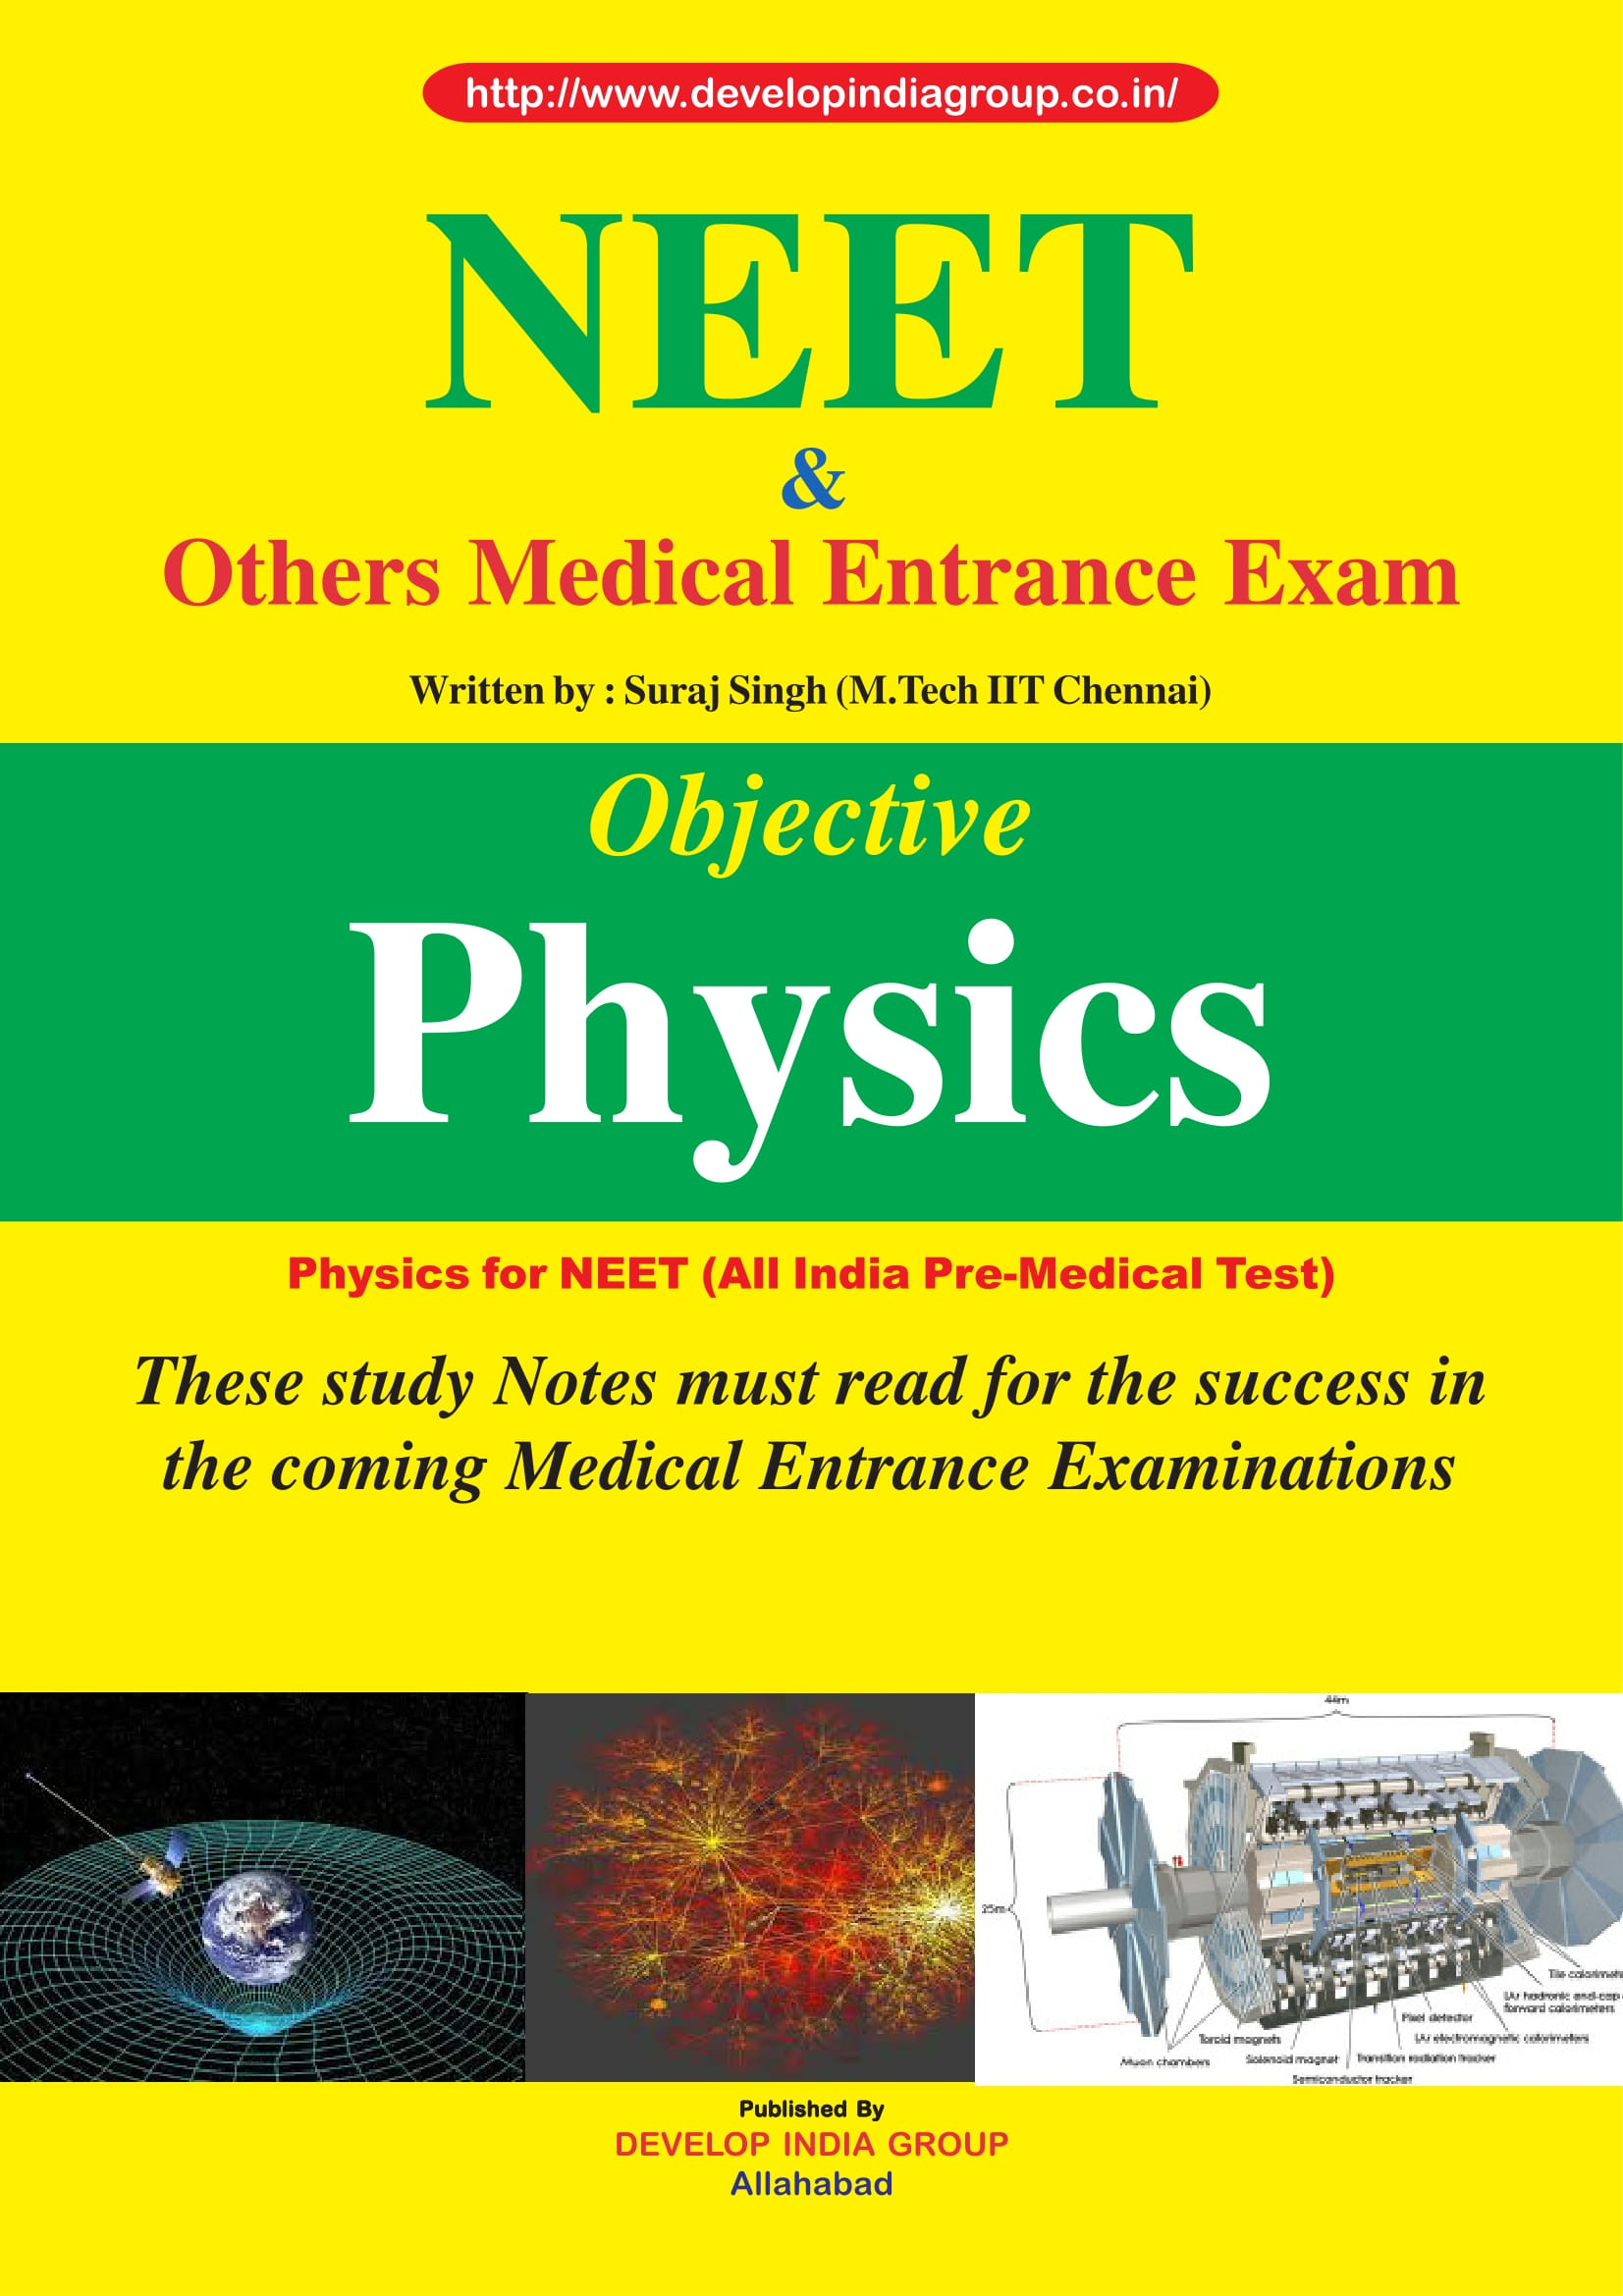 Physics_for_NEET_(All_India_Pre-Medical_Test)